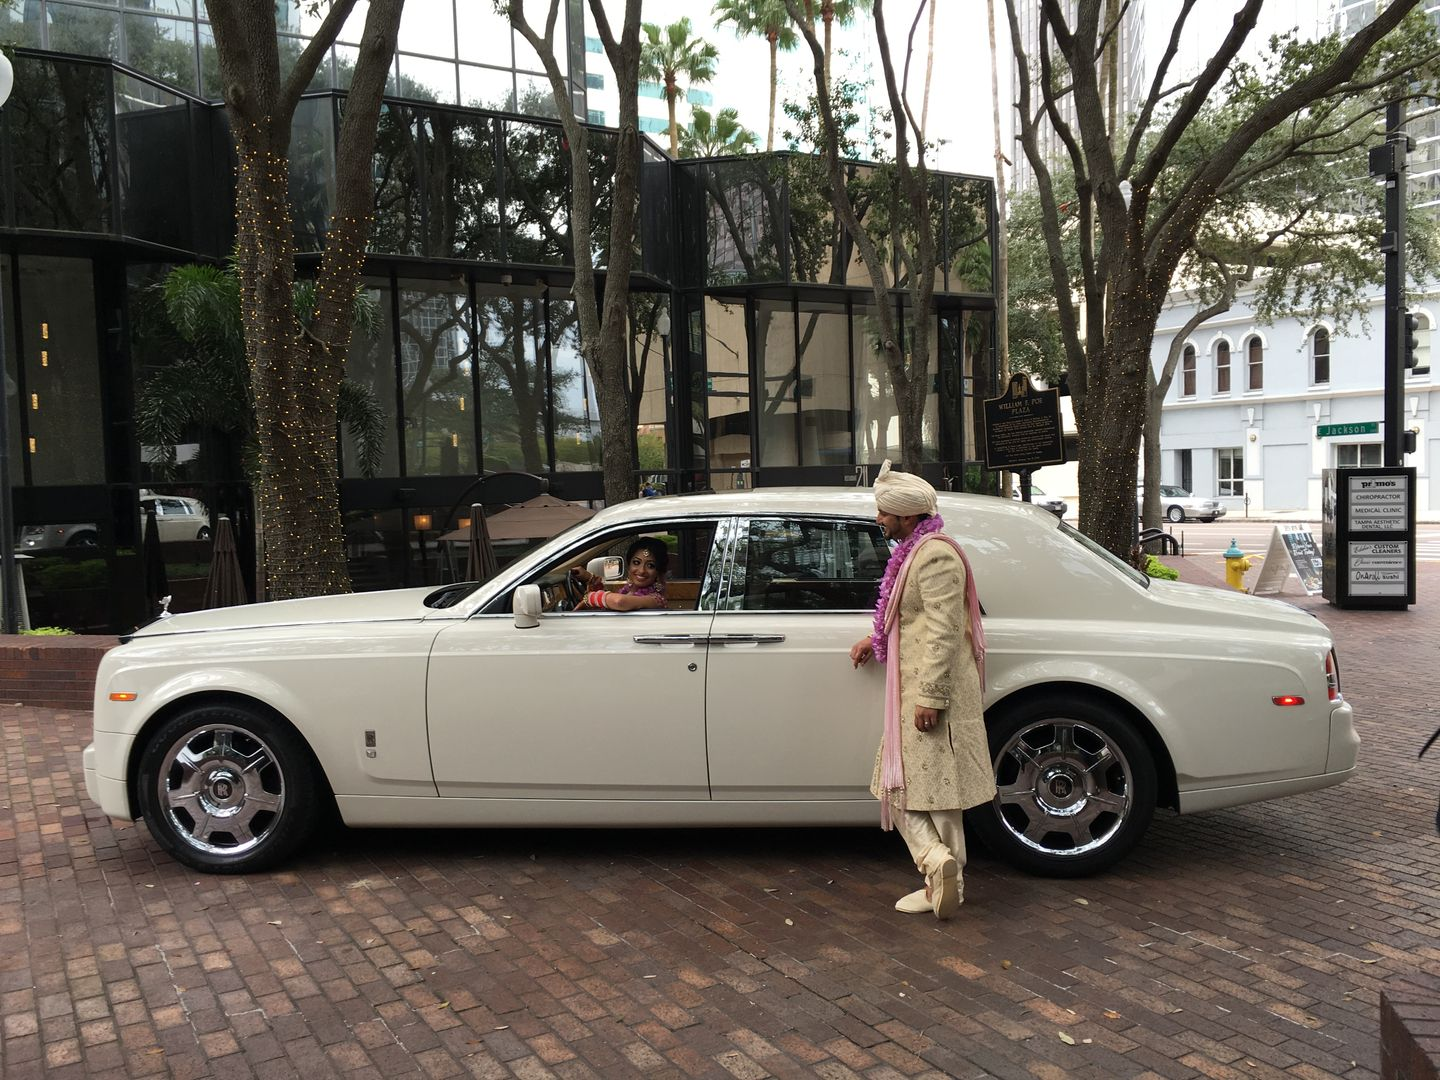 Rent Our White Rolls Royce Phantom For Your Wedding Call Today To Make A Rolls Royce White Rolls Royce Wedding Car